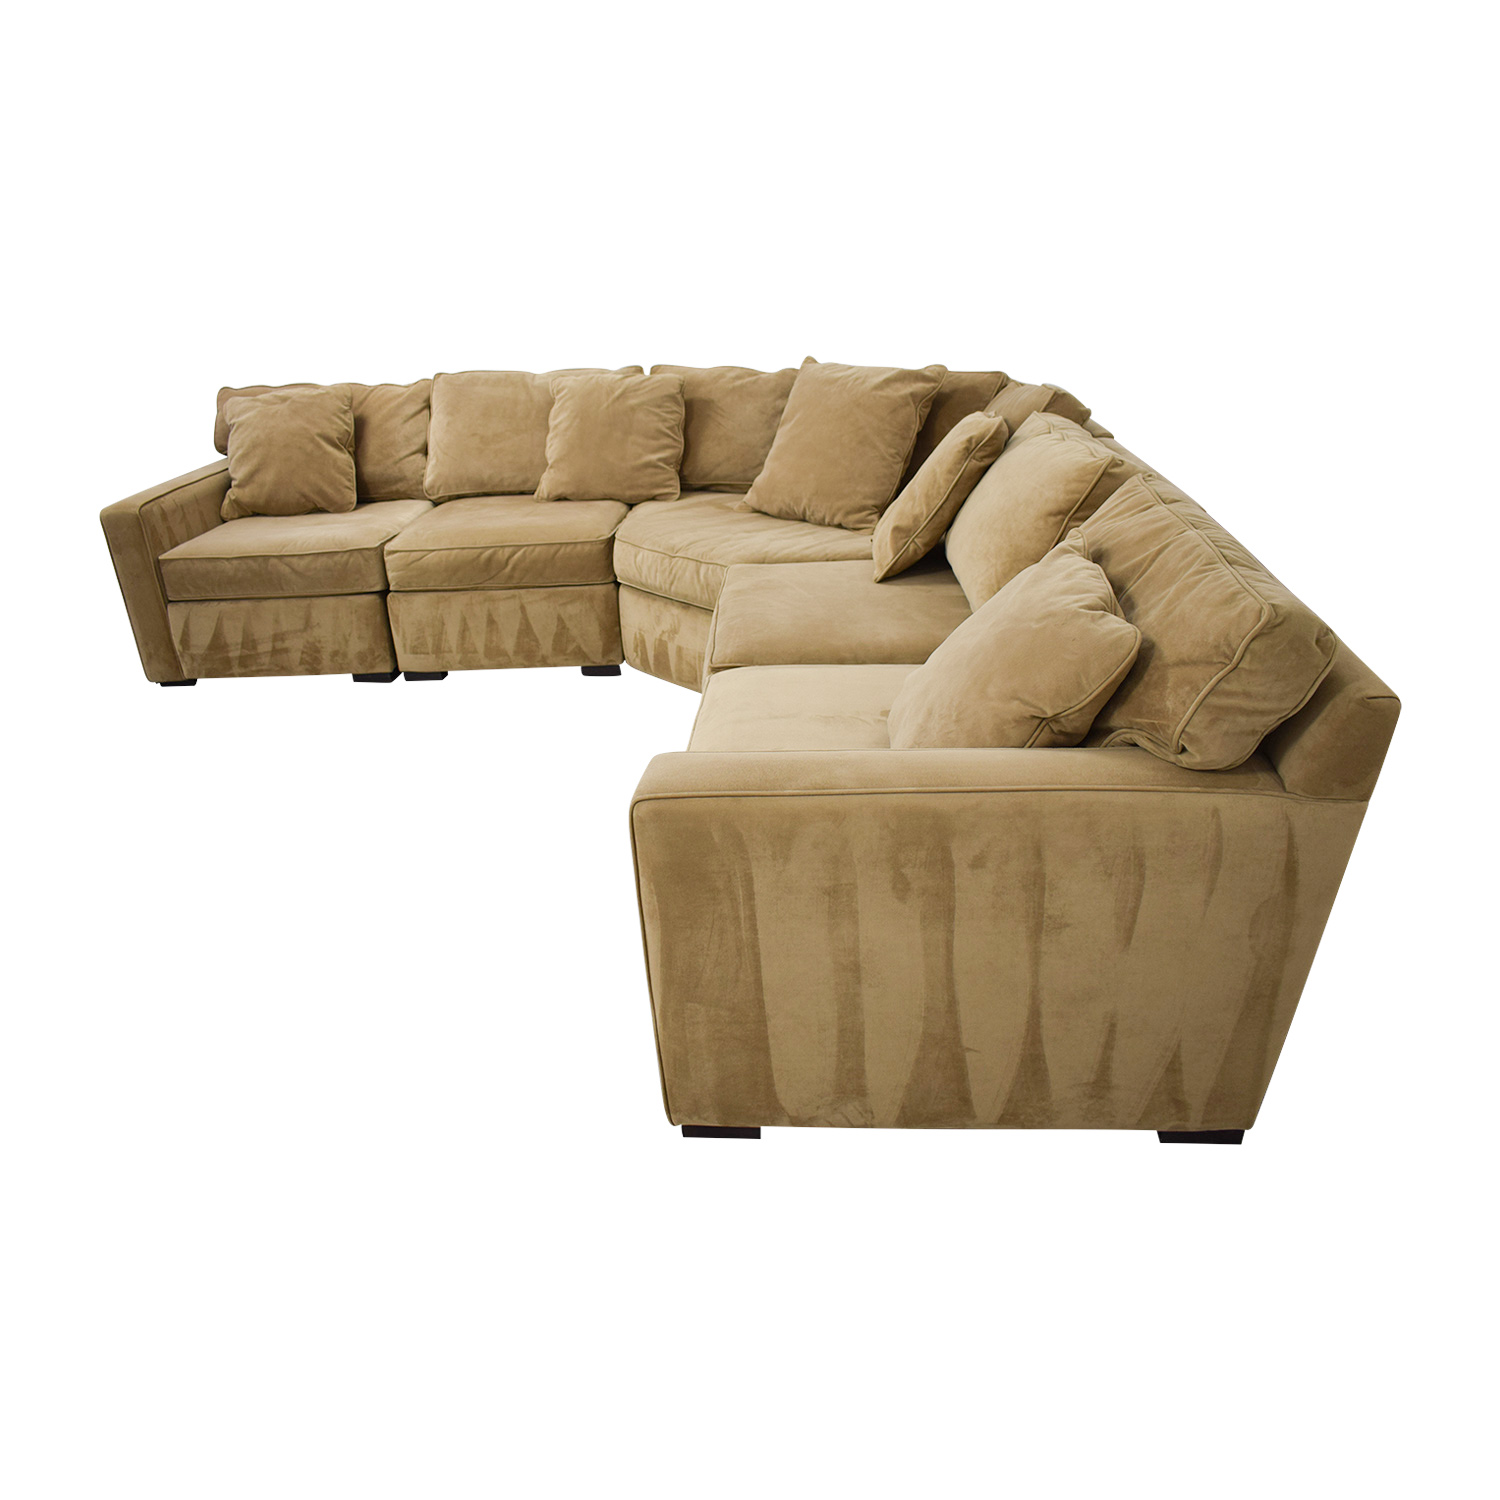 Macy's Macy's Tan Corner L-Shaped Sectional coupon